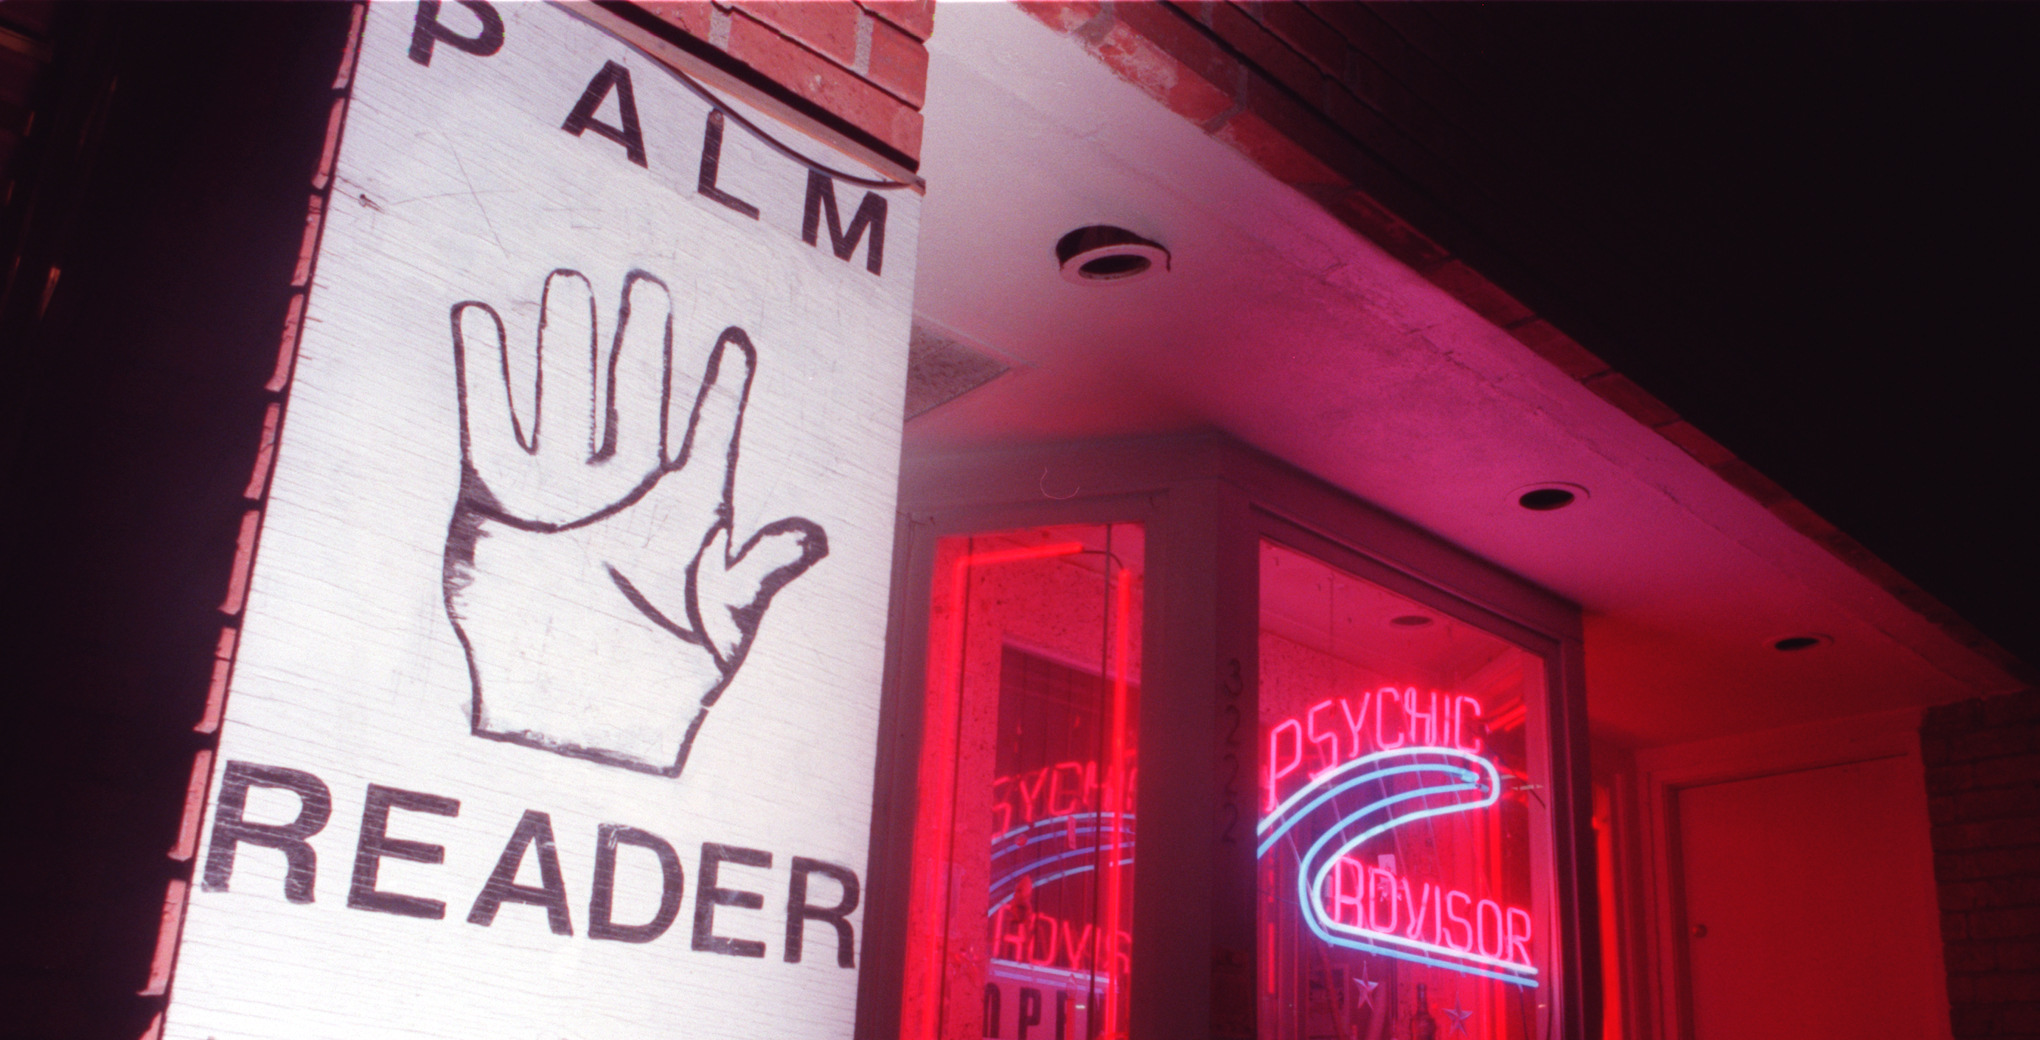 ME.sign.1227.CW Exterior of a psychic/palm reading shop located on 6th Street in Los Angeles, shot W